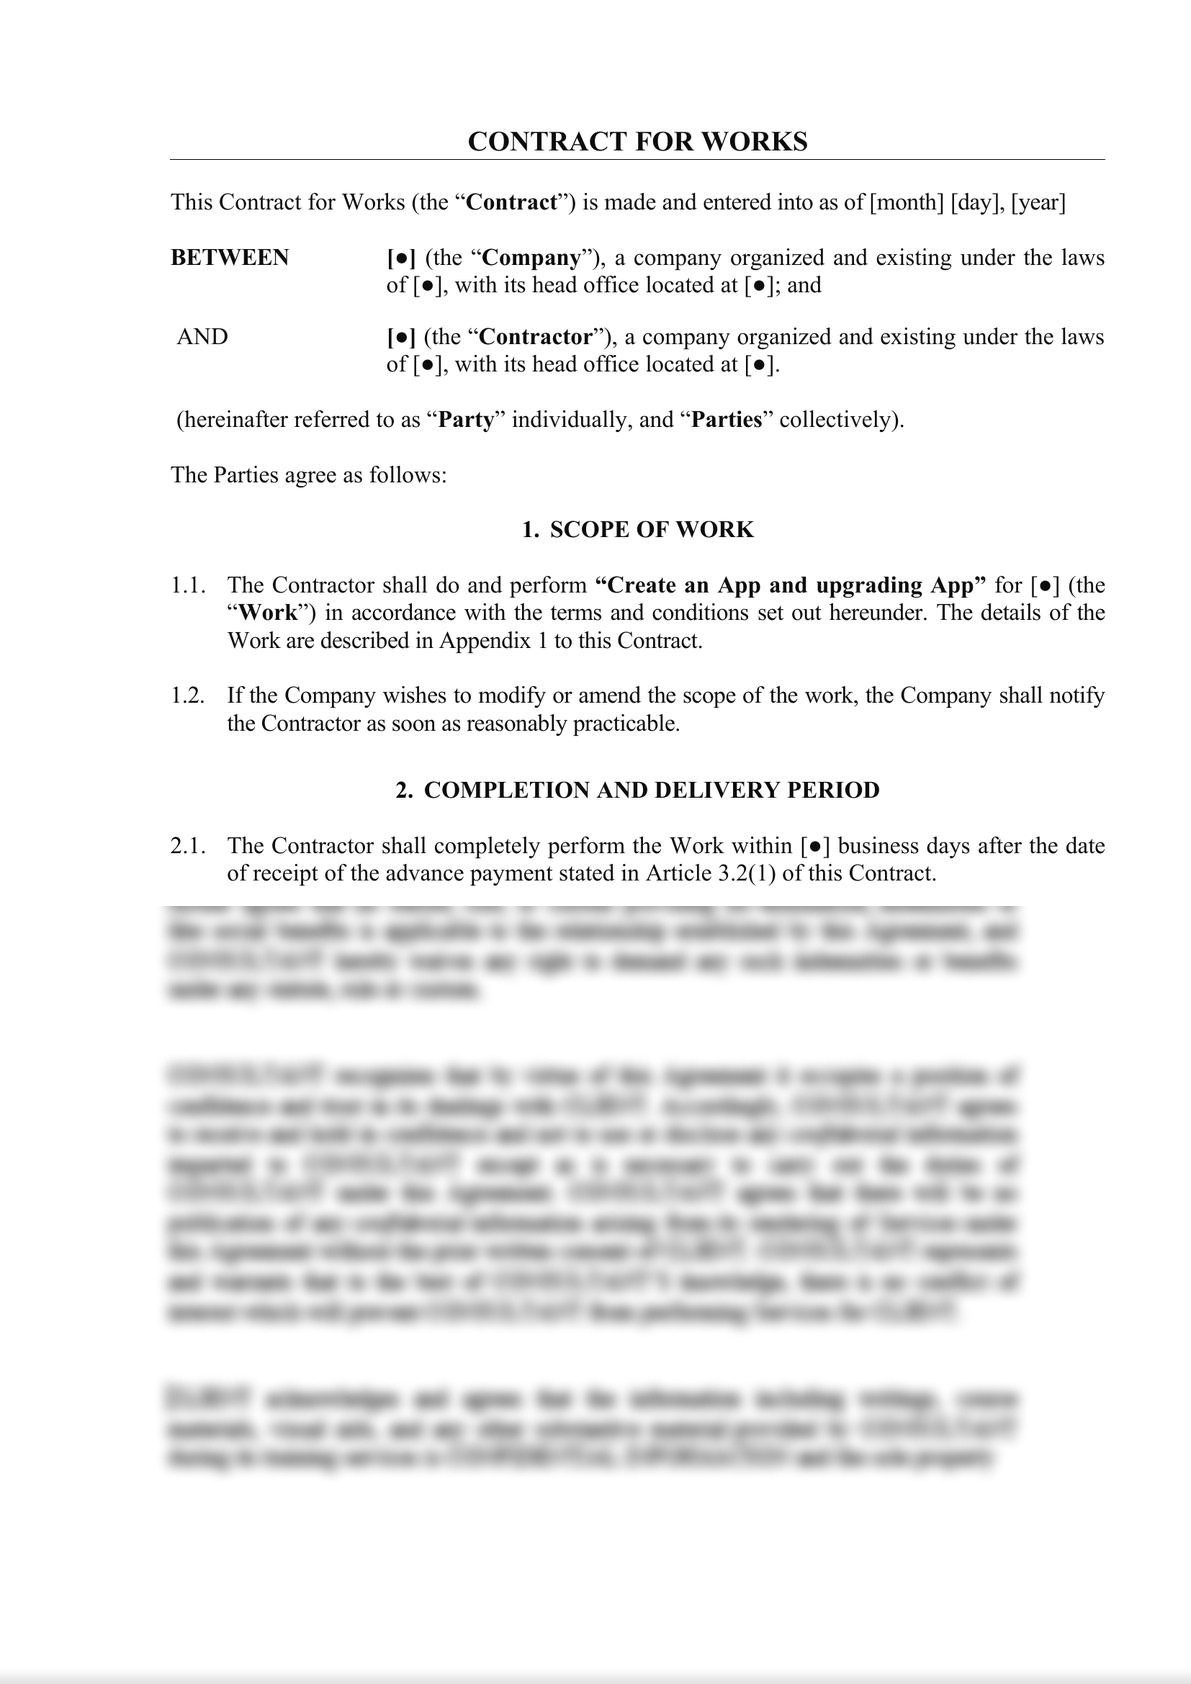 Contract for works (System or App)-0